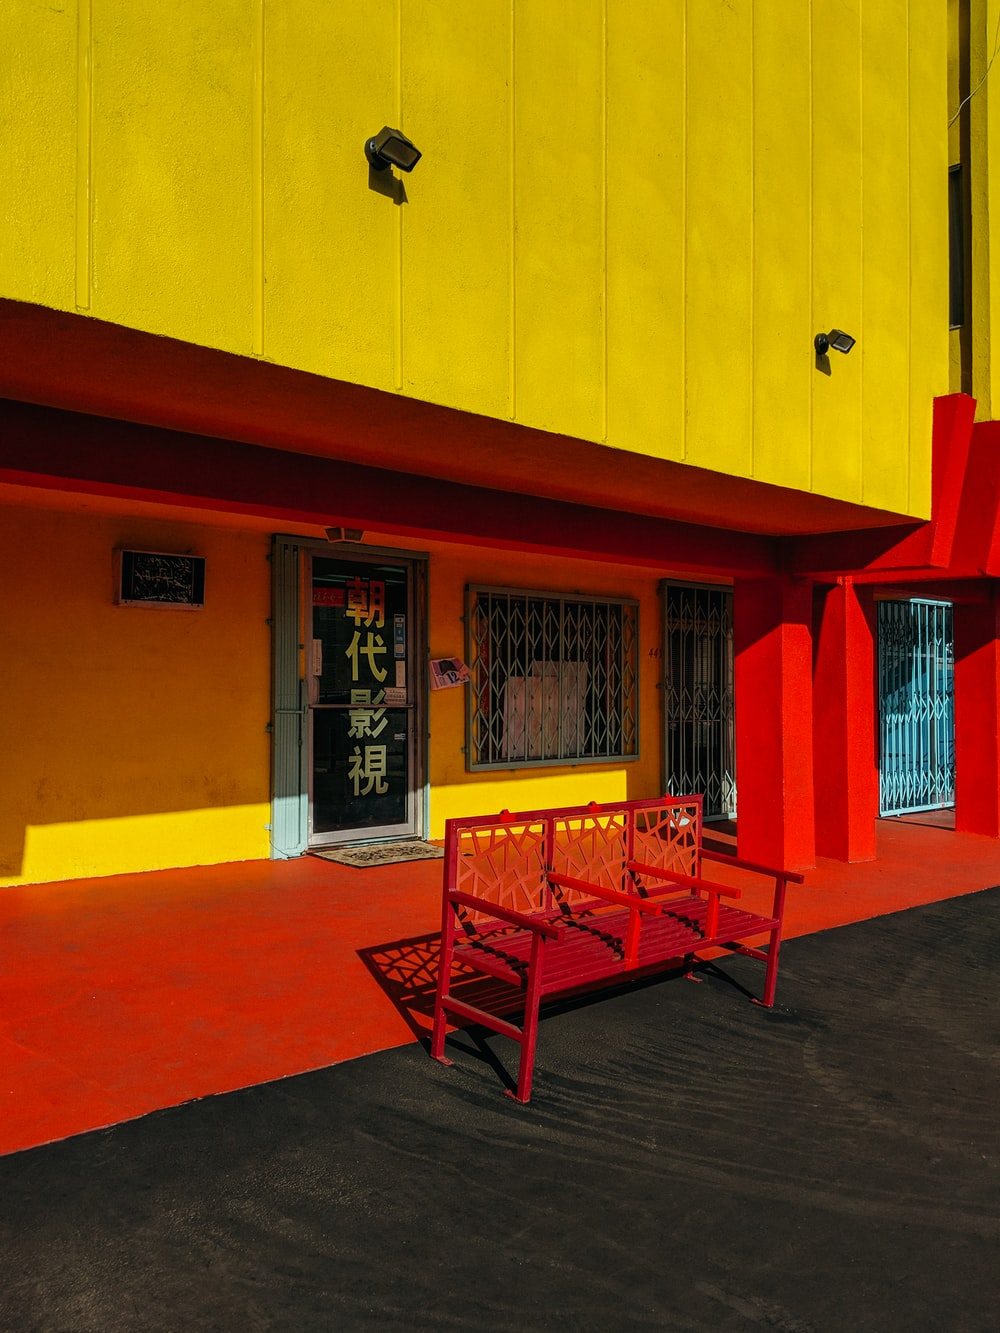 red bench in front of store facade